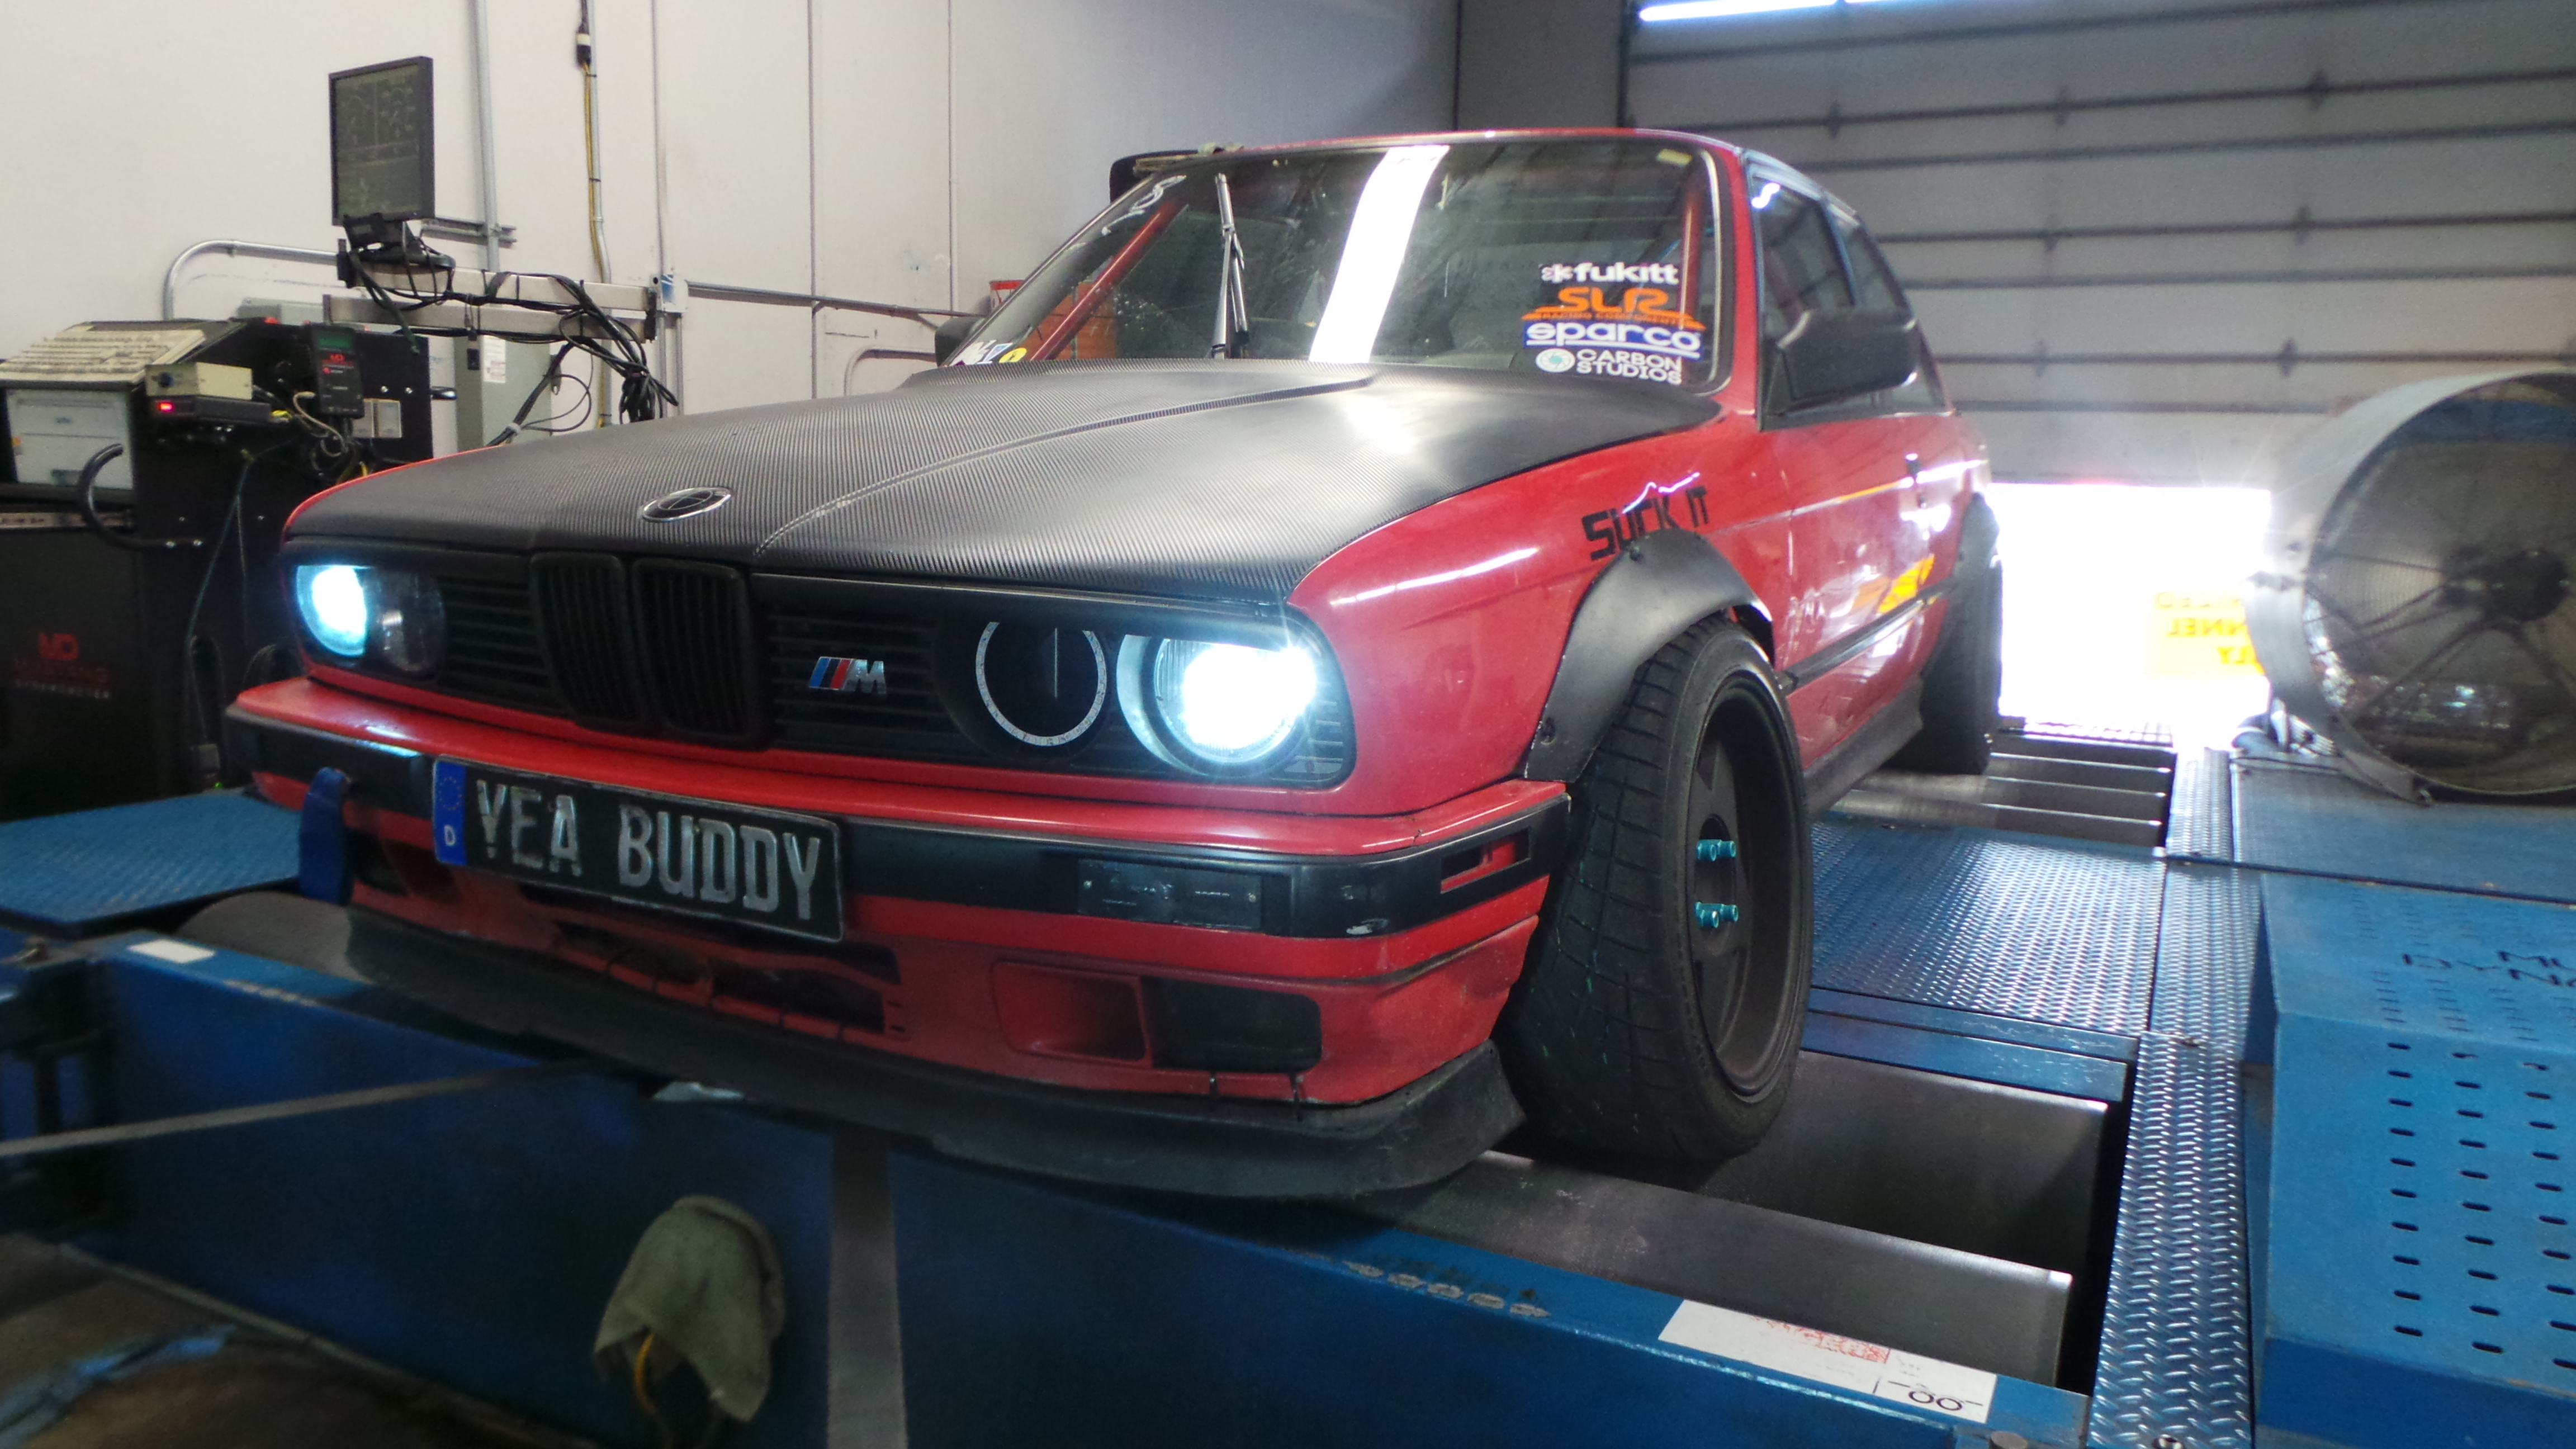 Fineline Imports Red Baron Racing Fine Line Imports Latest Blog Entries